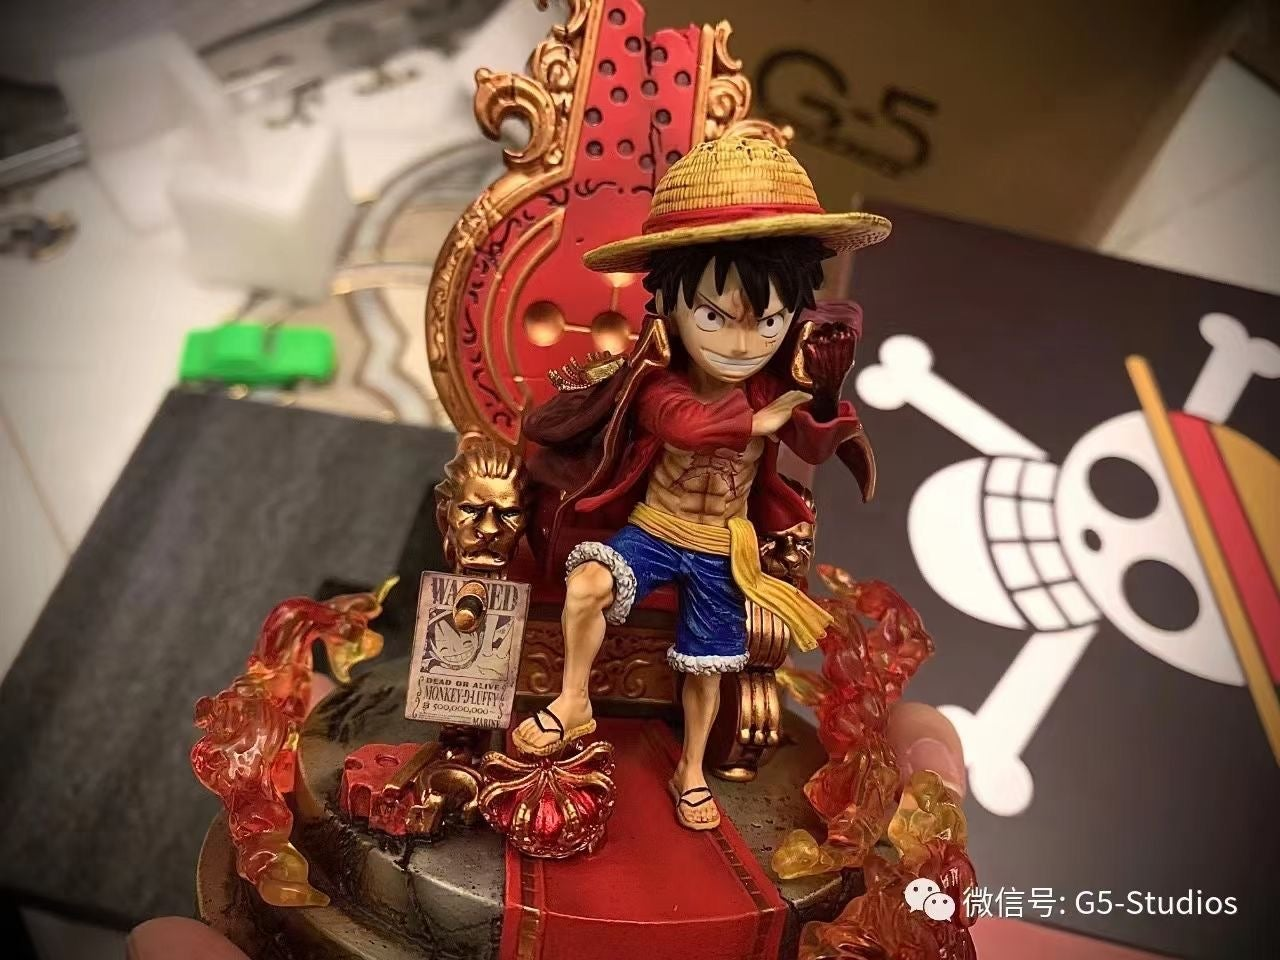 Image of [In-Stock]One Piece G5 Studio Monkey D Luffy Resin Statue